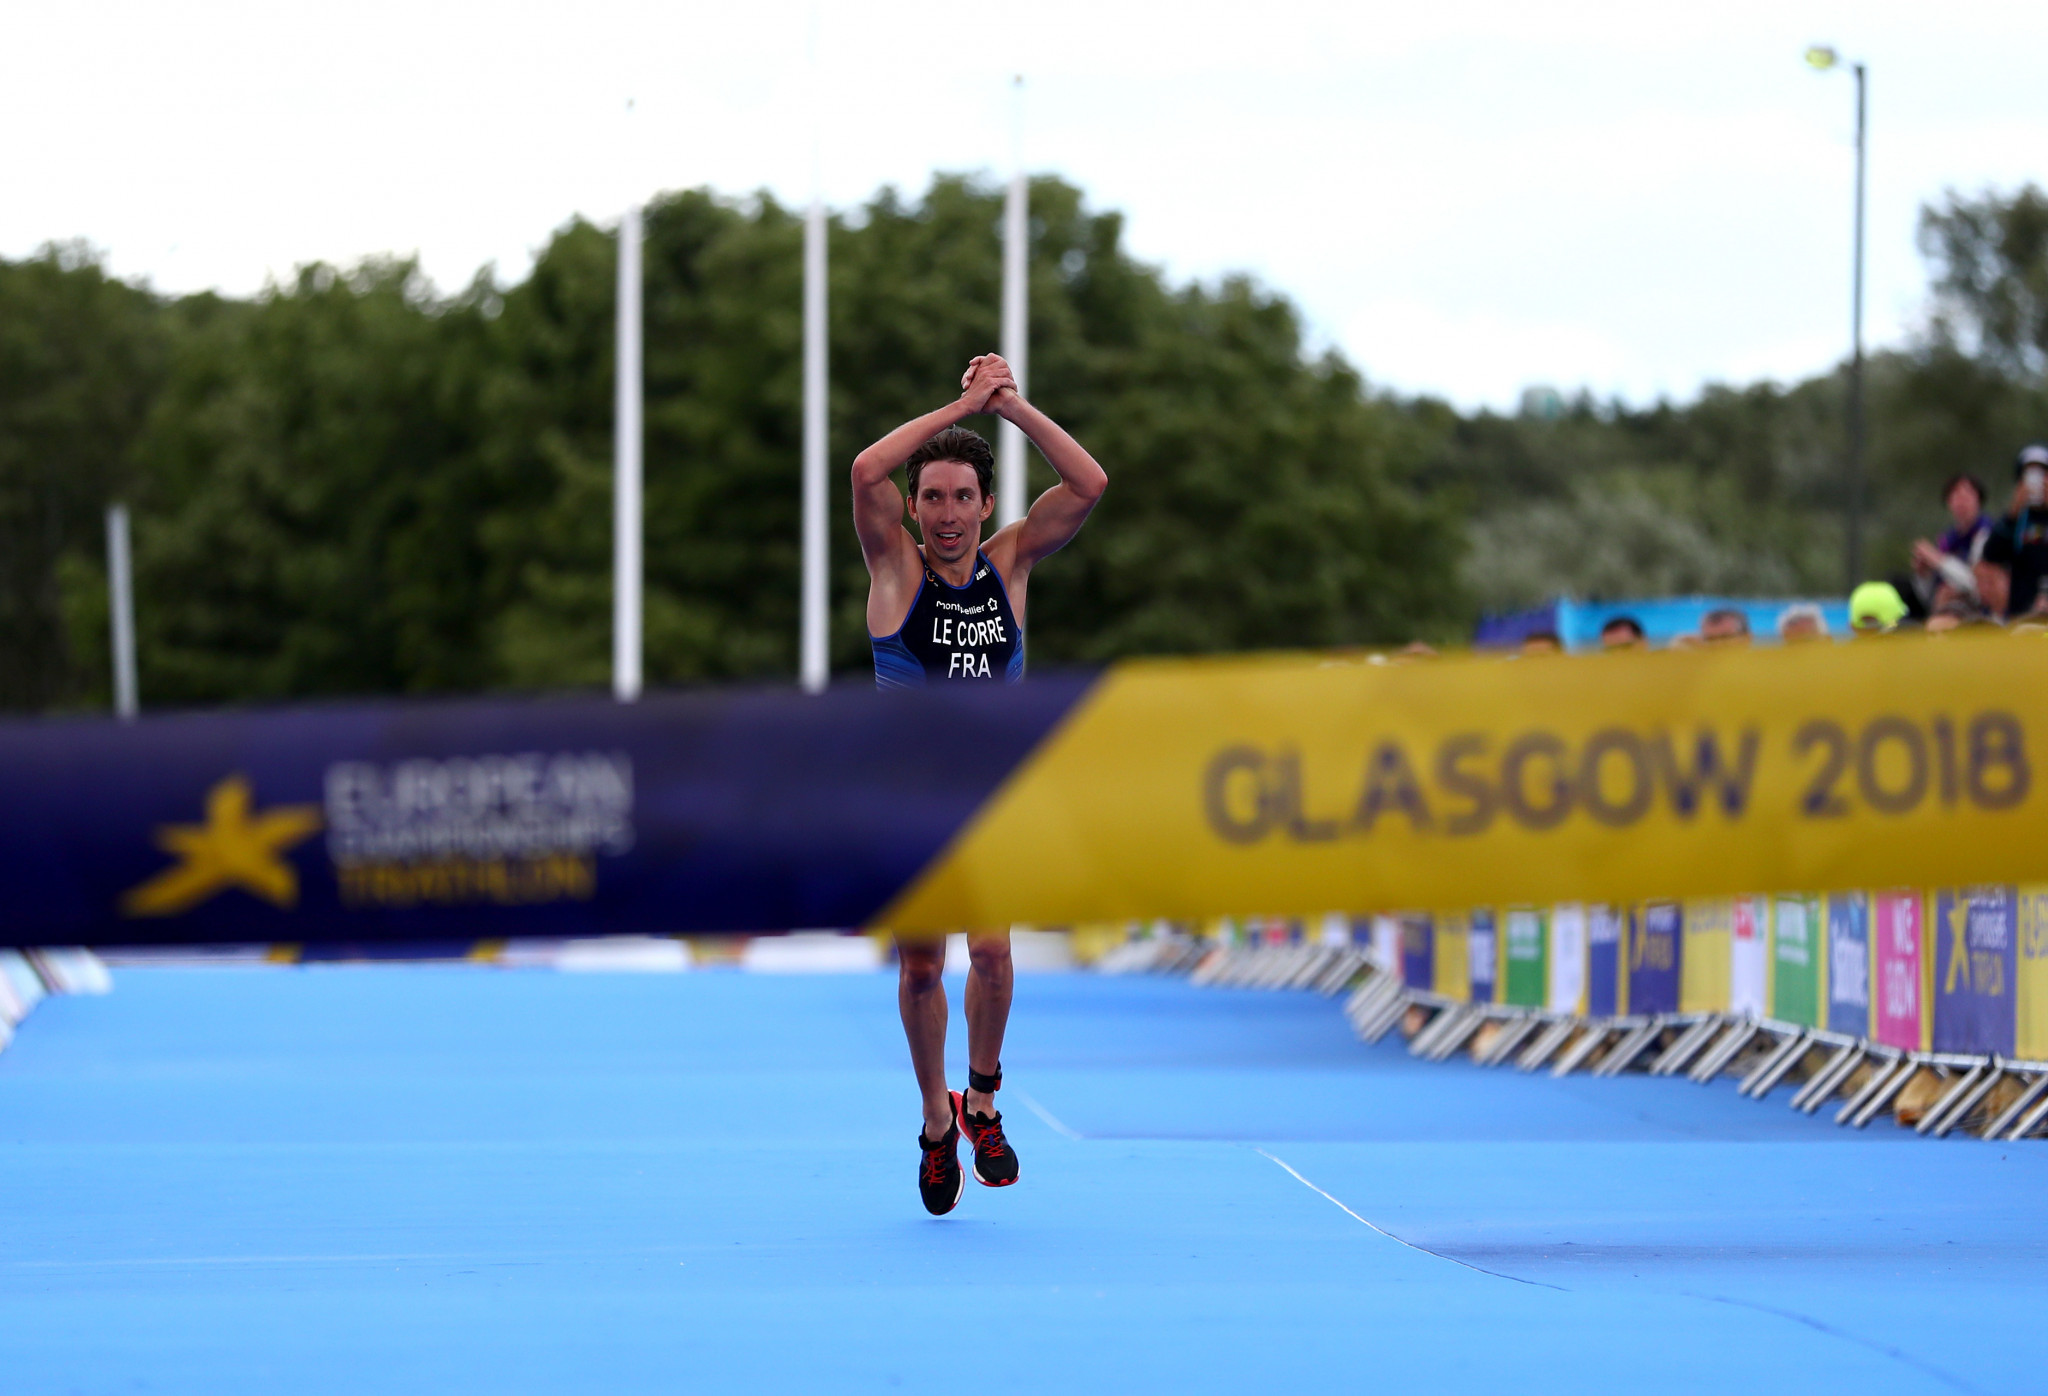 Le Corre clinches men's European Championships triathlon title as Alarza charges to second